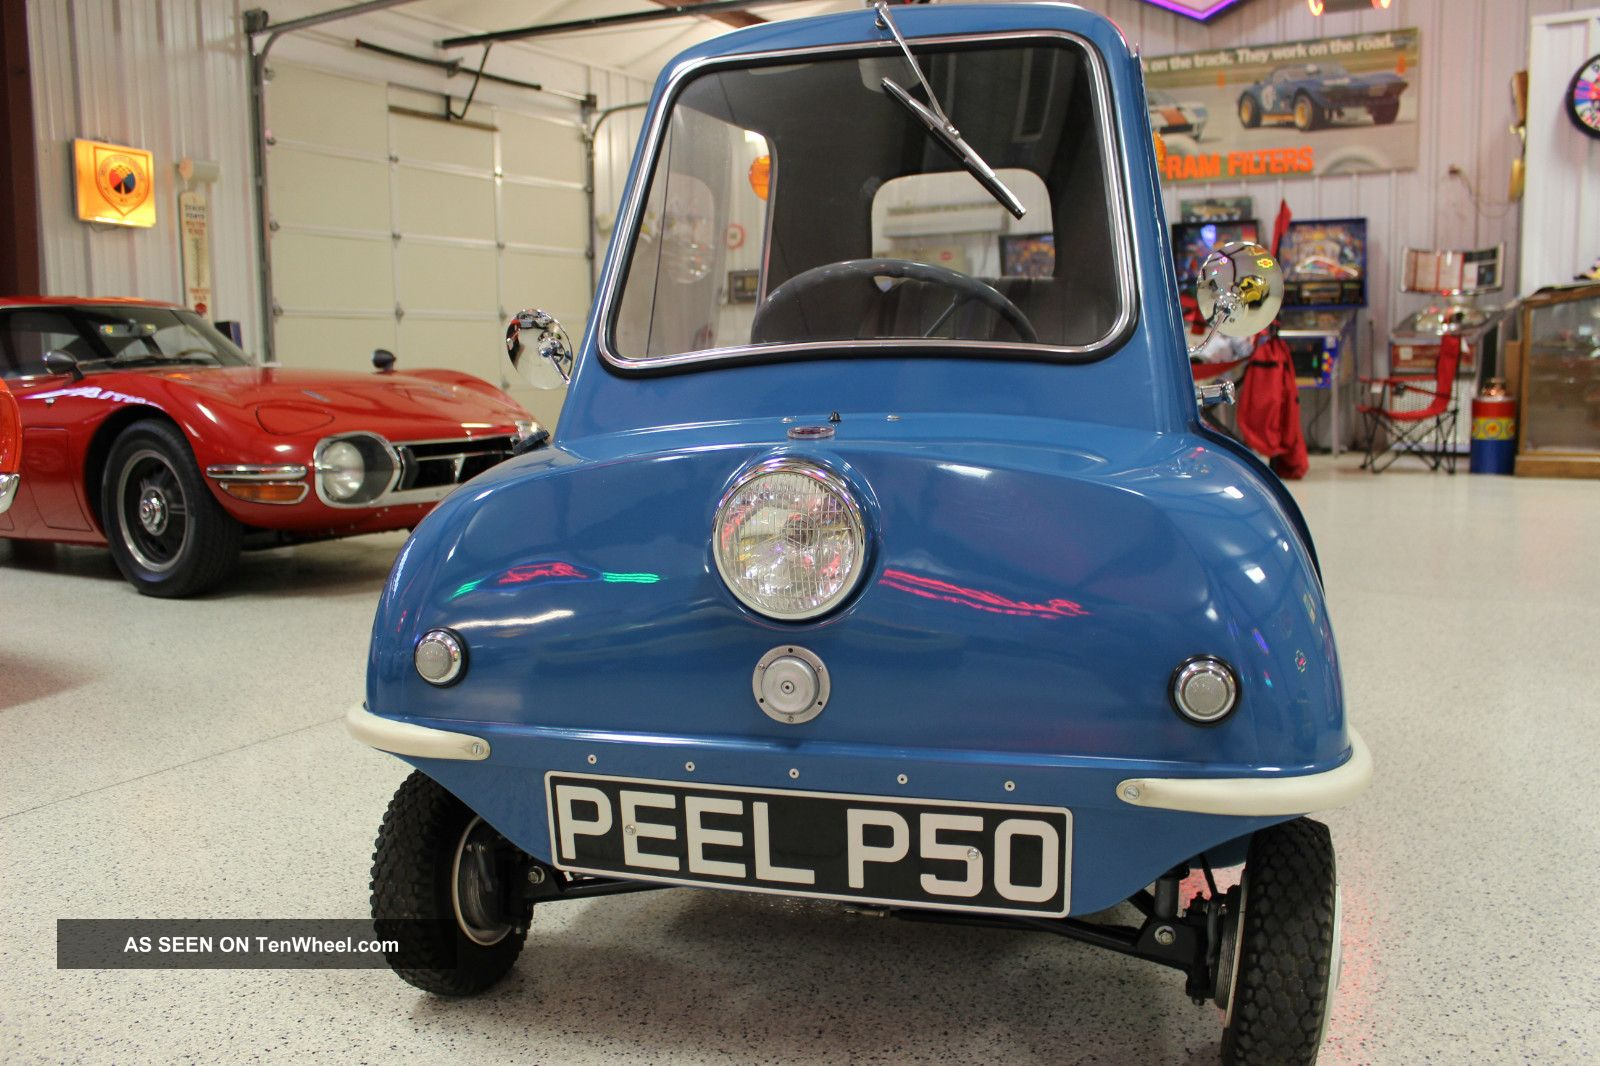 1963 Peel P50 Replica And Vintage Pav Trailer Other Makes photo